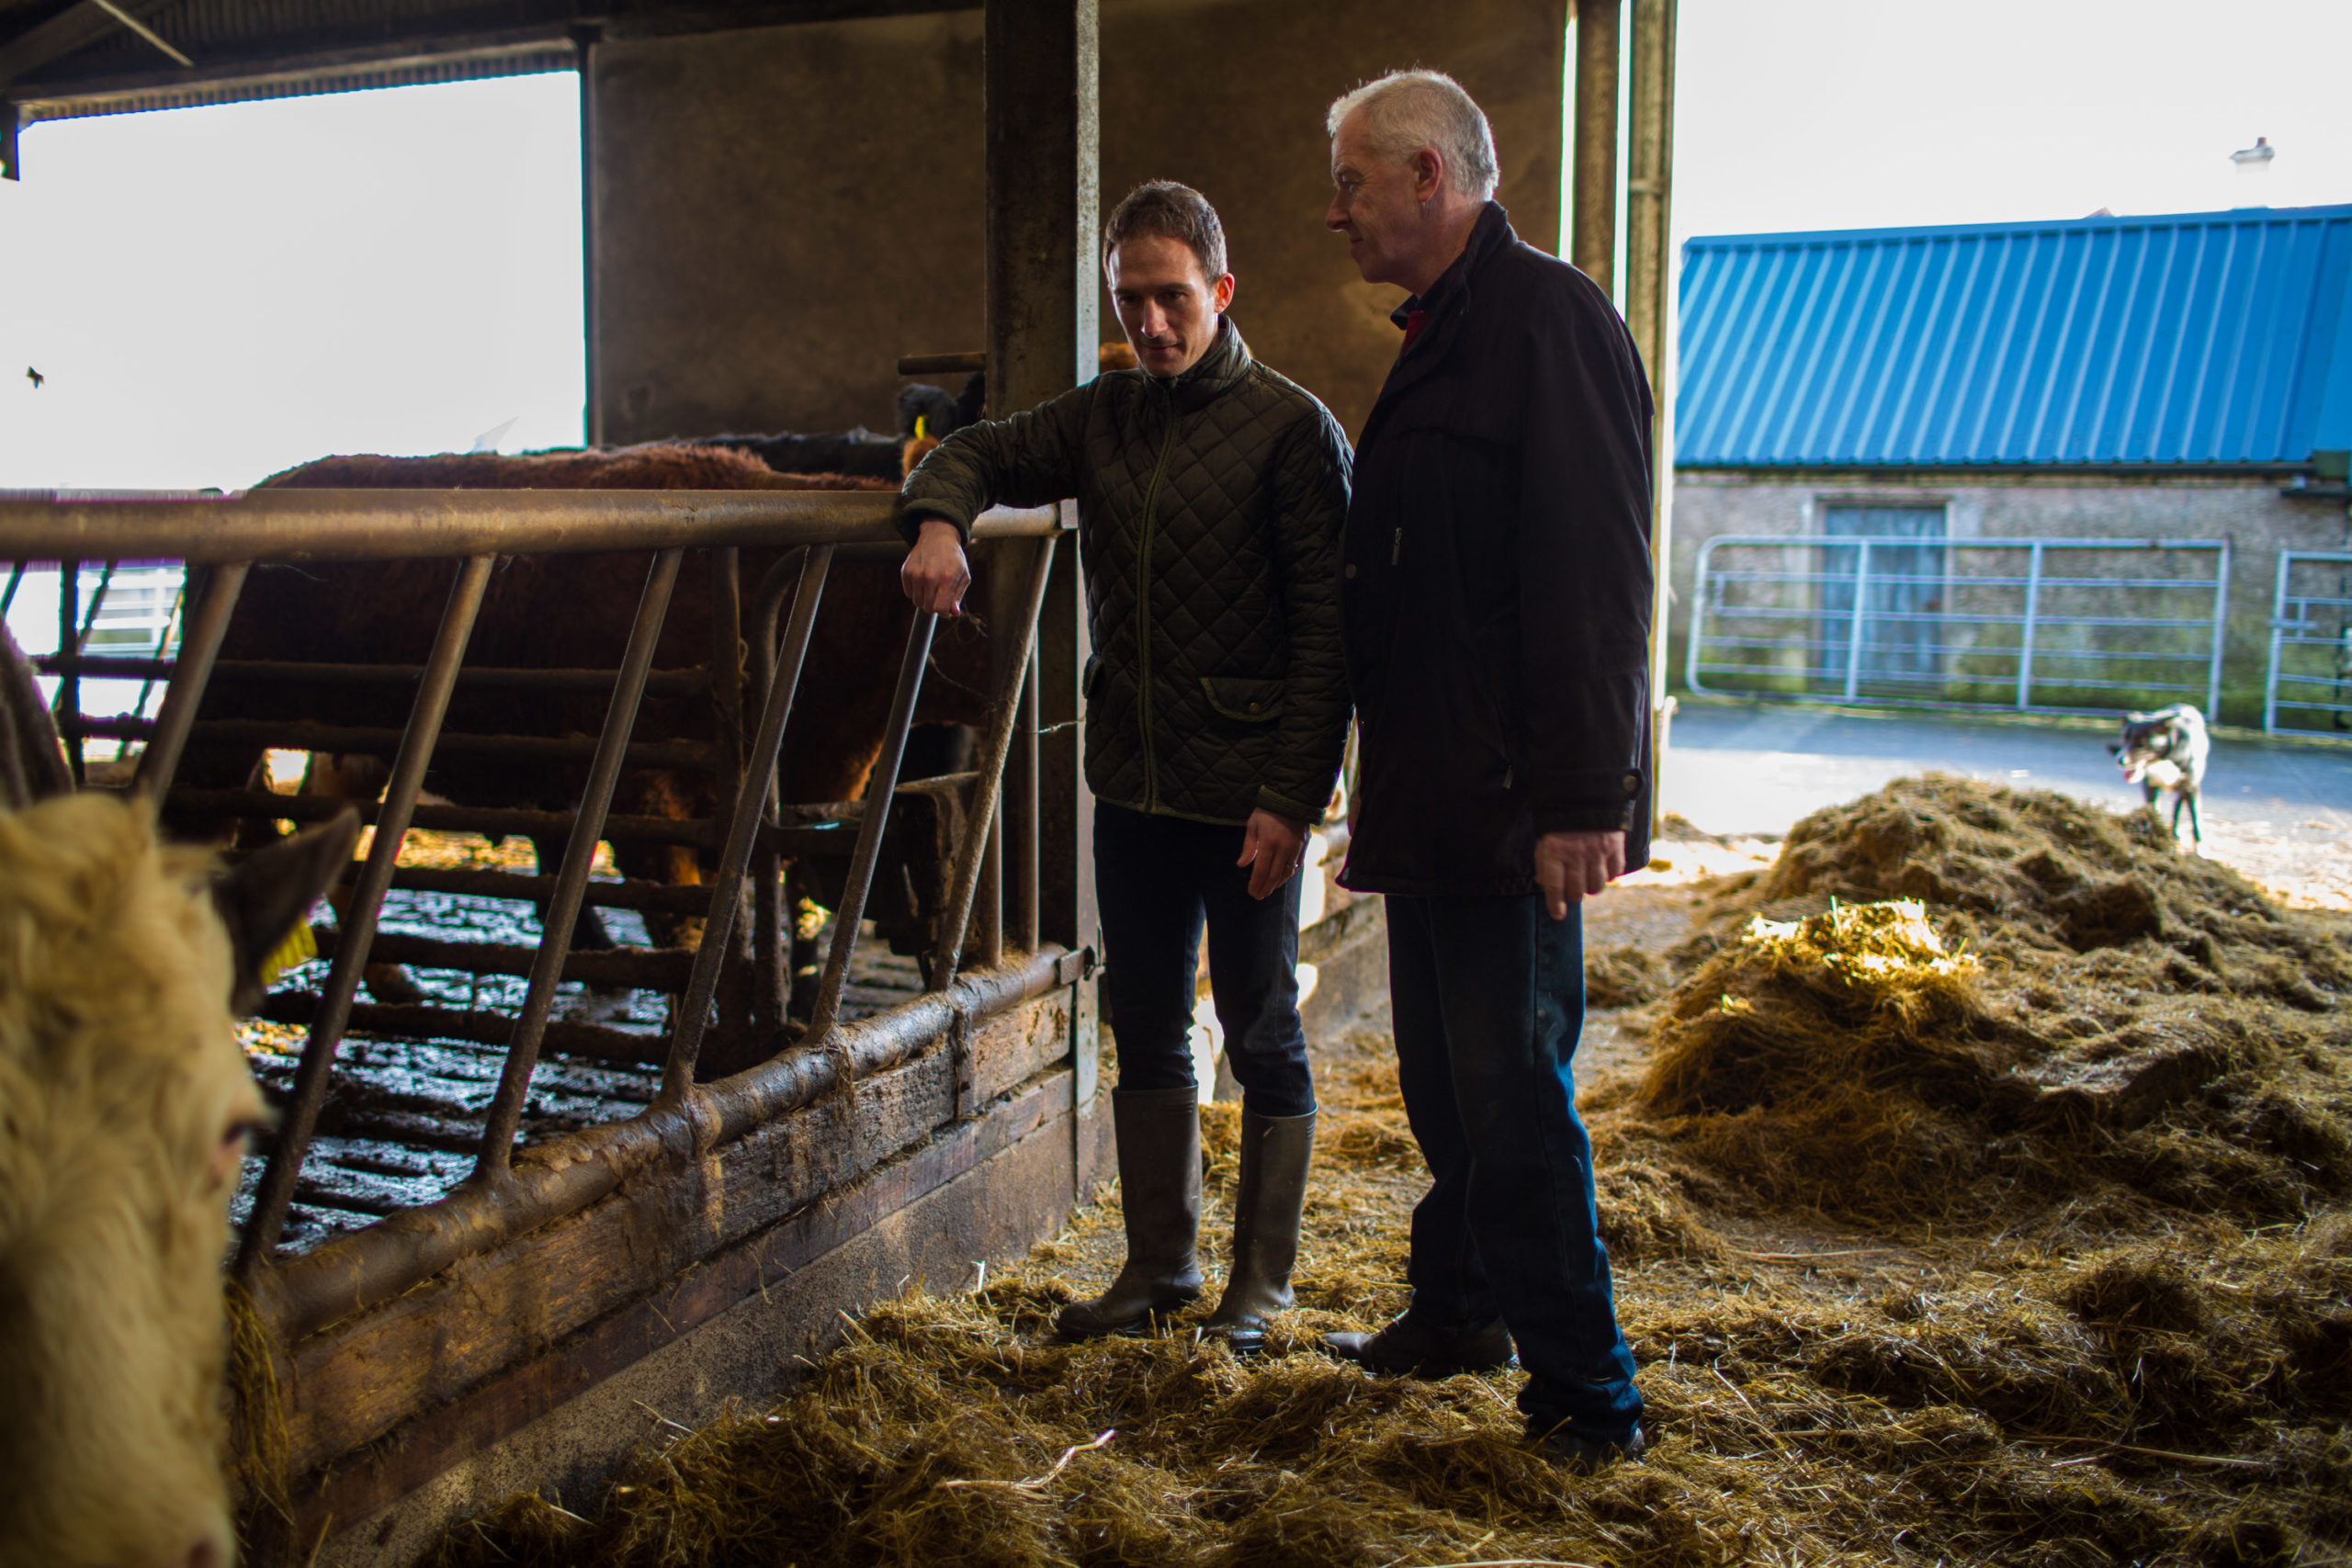 Alan Dillon with Beef Farmer, Owen O'Malley in Islandeady